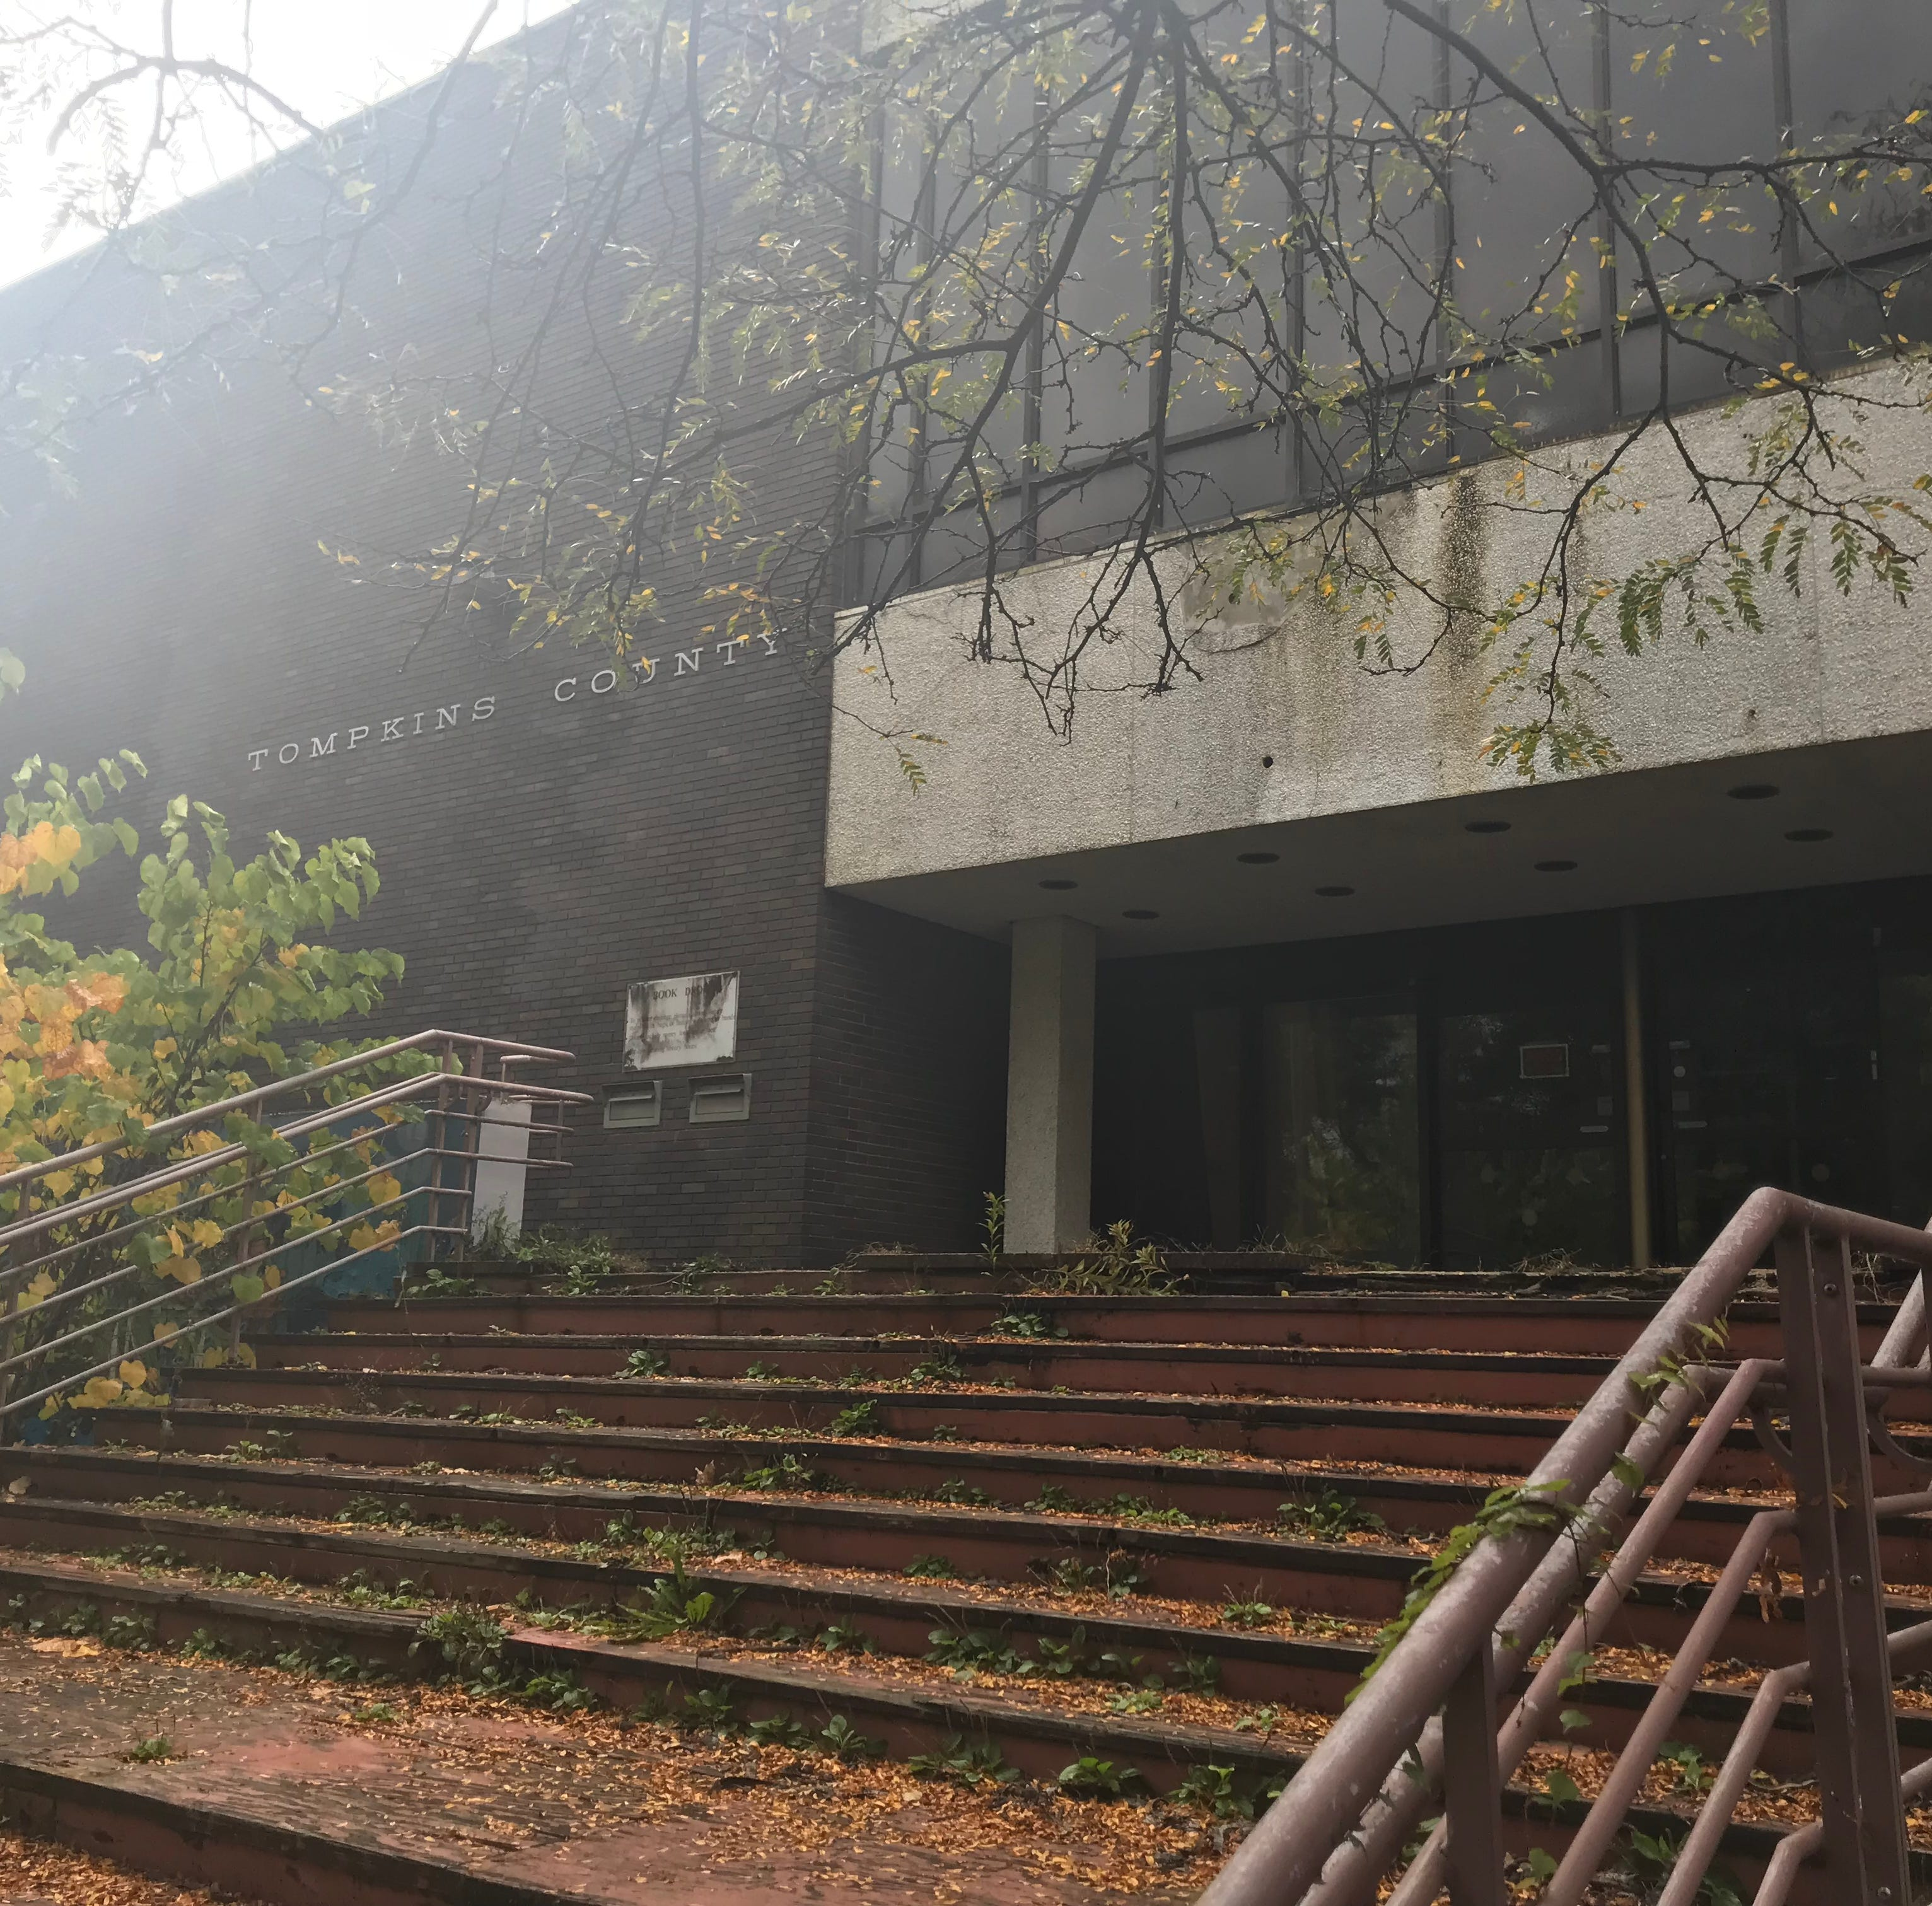 Demolition of old Tompkins County Library to go ahead despite environmental concerns